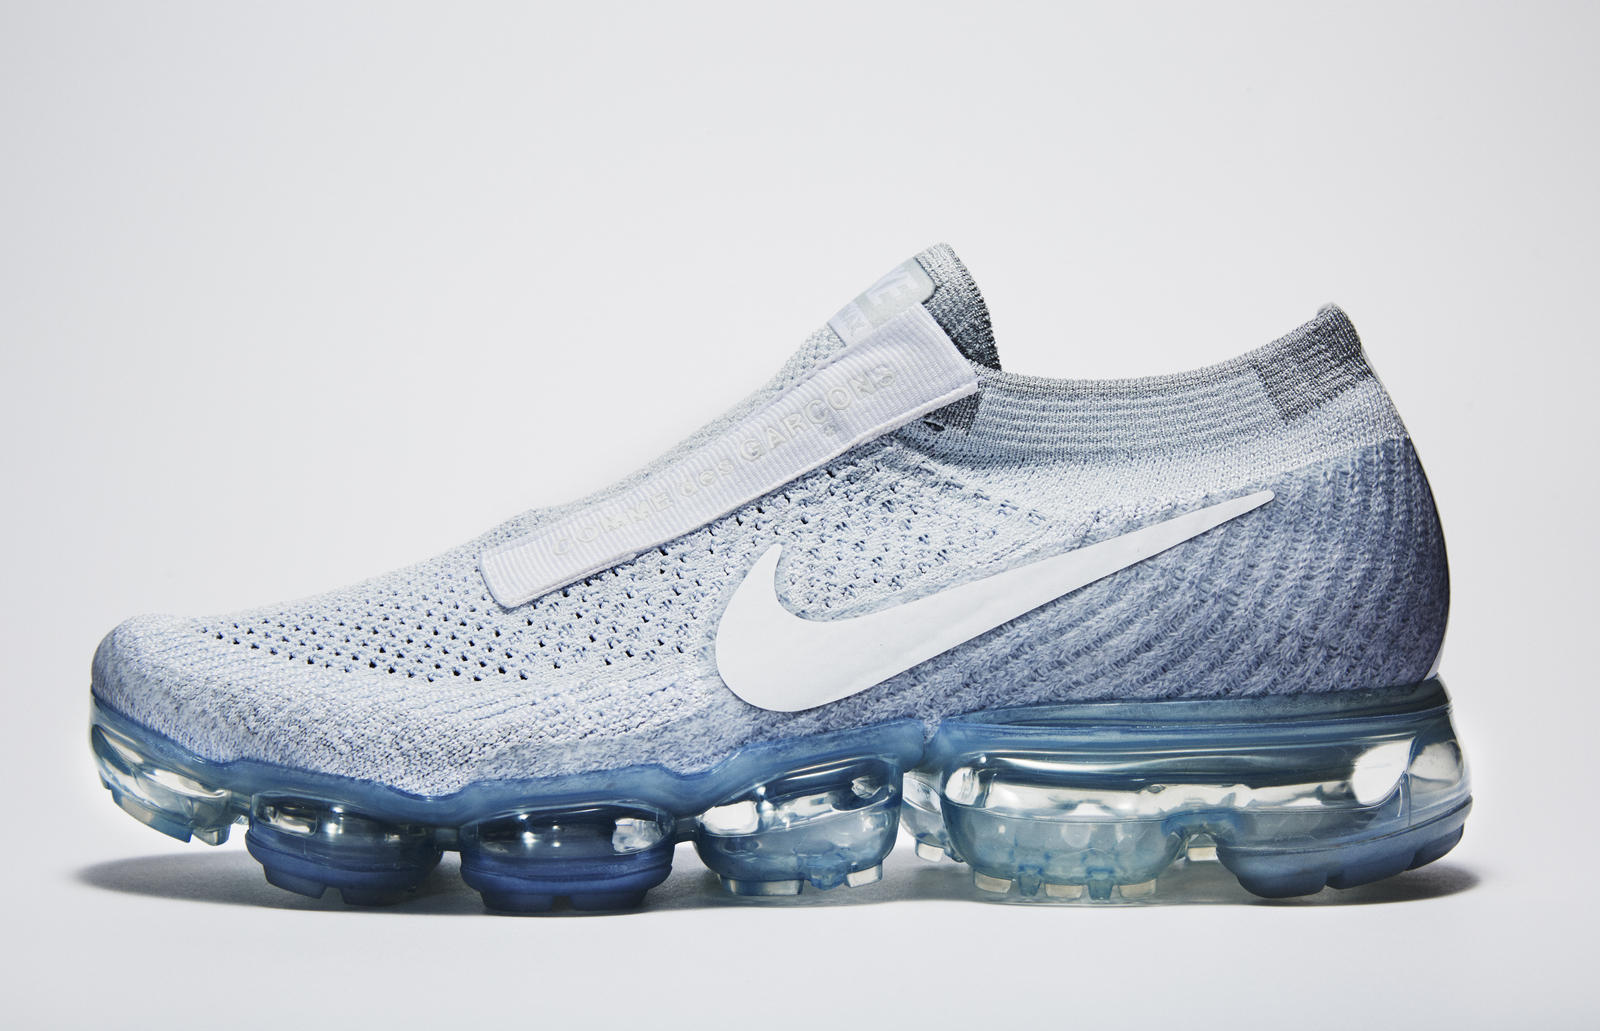 20172018 scarpe convenienti Nike Performance AIR MAX 2017